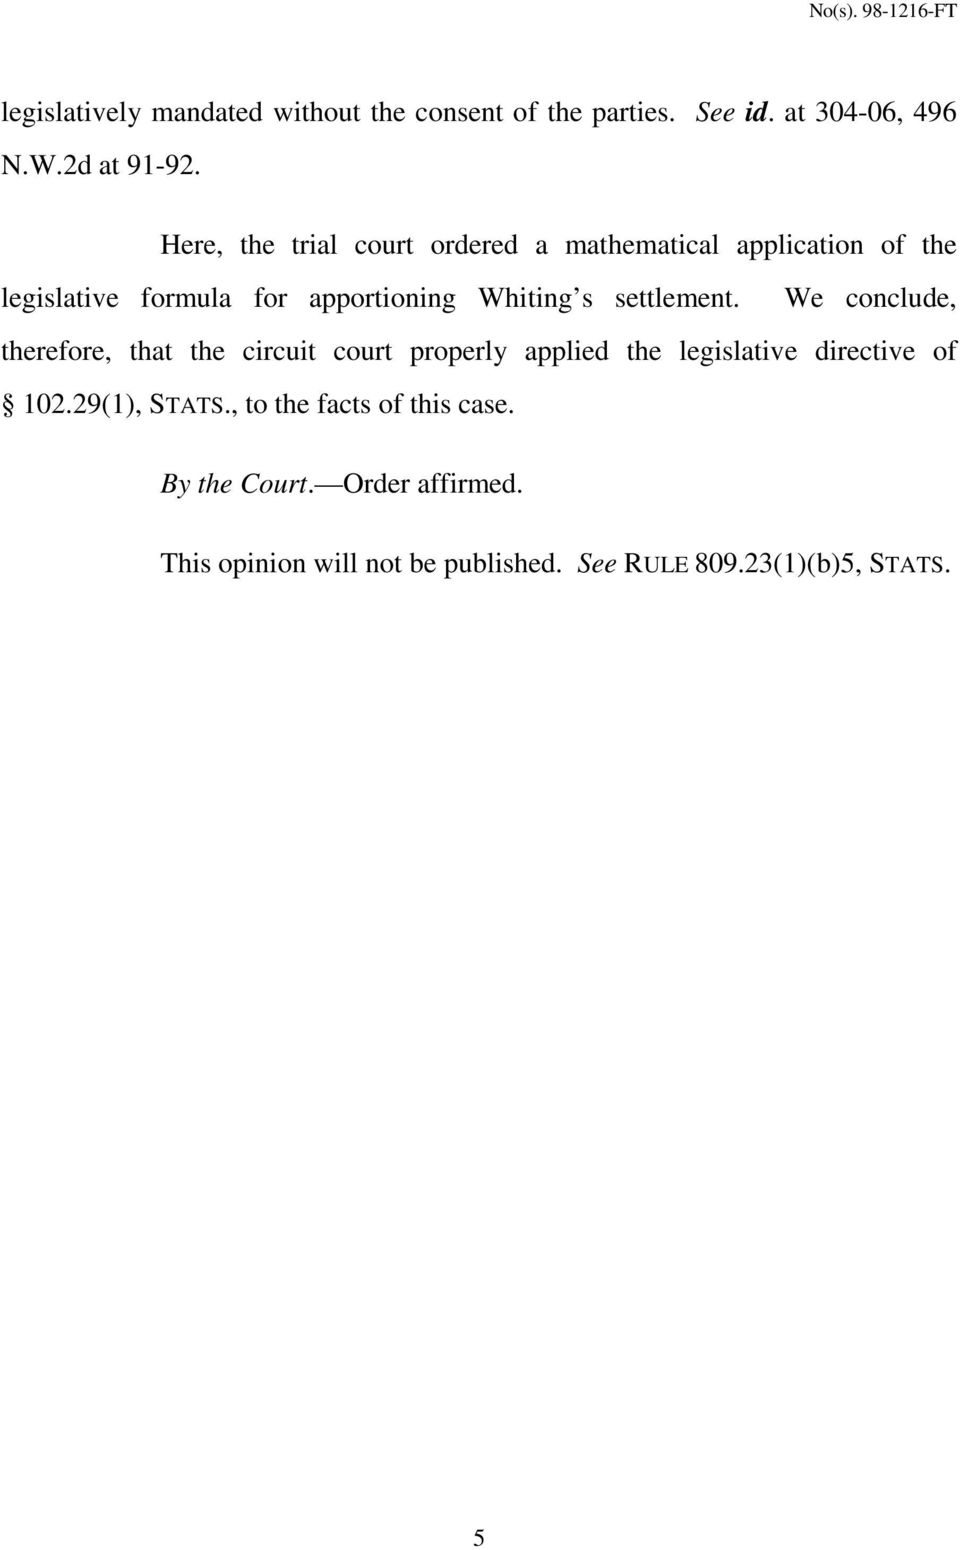 settlement. We conclude, therefore, that the circuit court properly applied the legislative directive of 102.